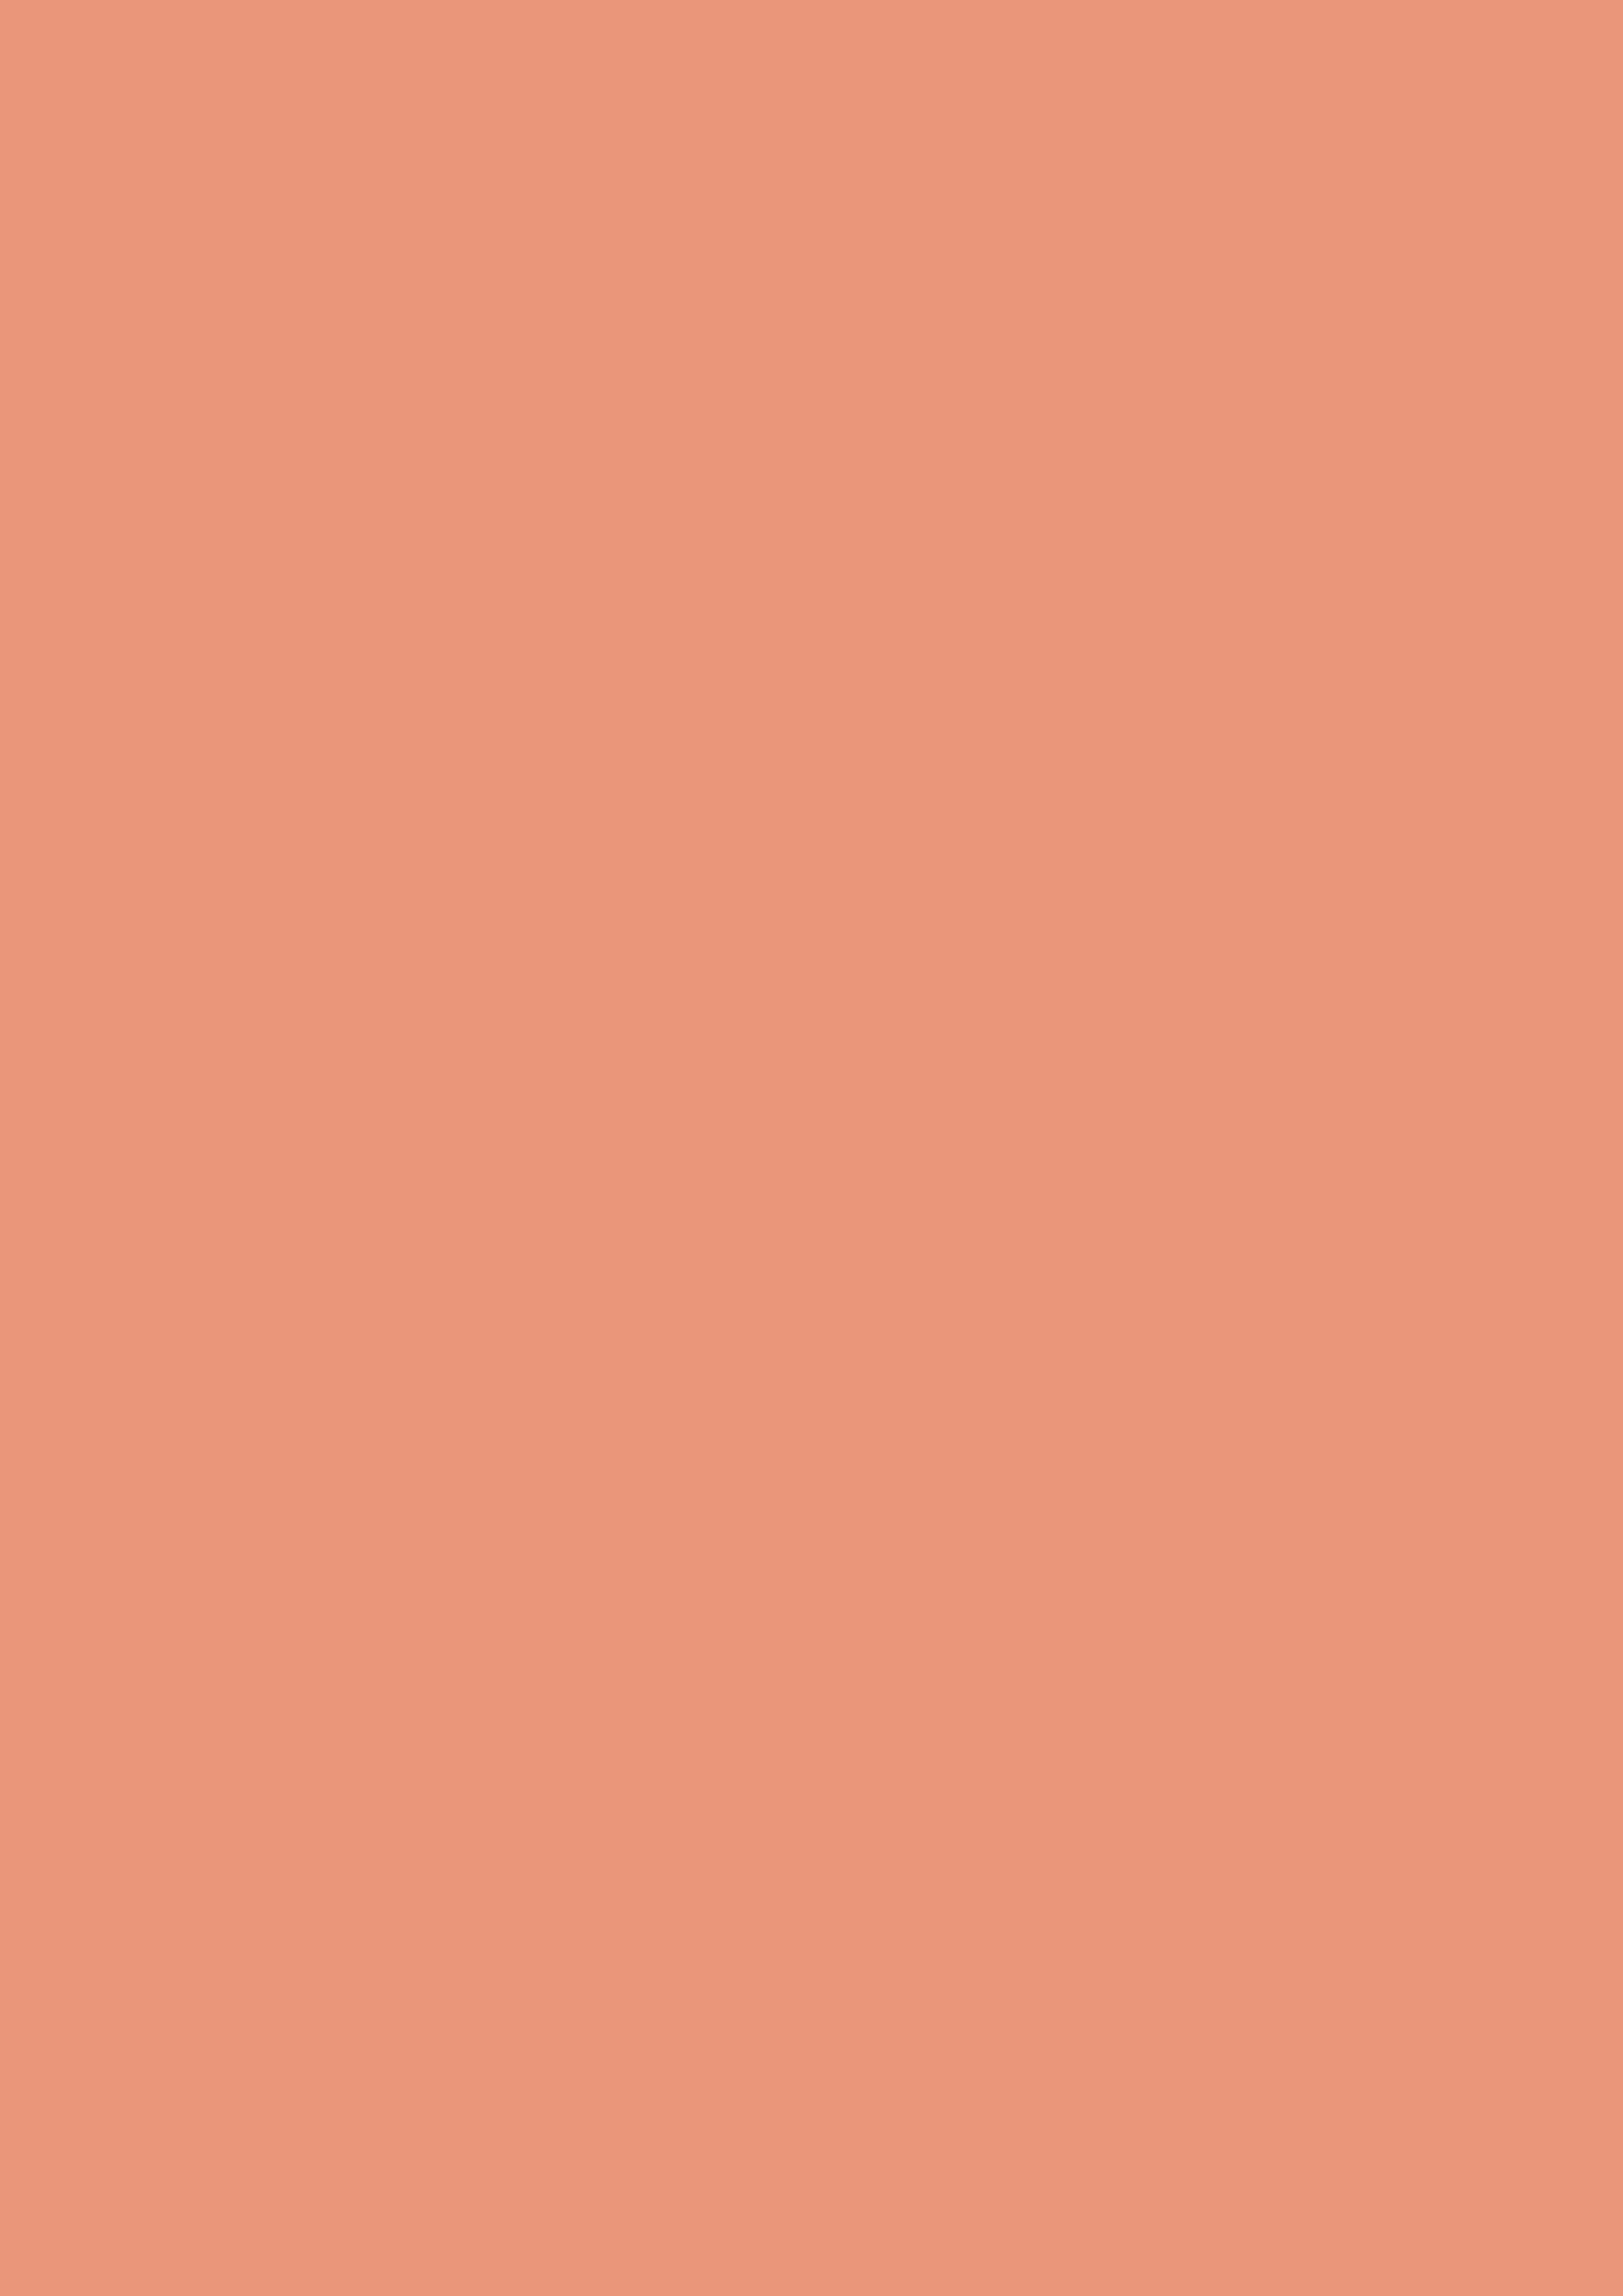 2480x3508 Dark Salmon Solid Color Background